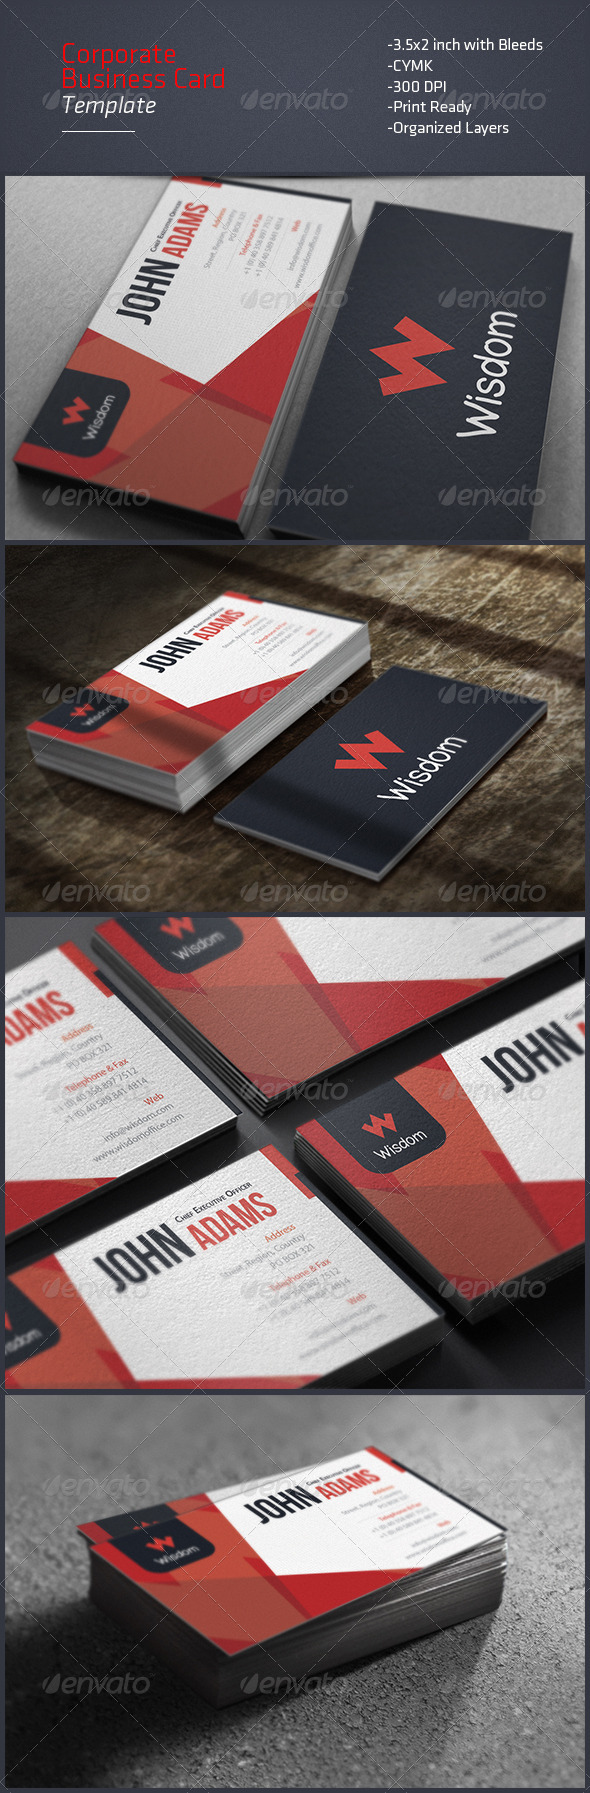 GraphicRiver Corporate Business Card 8111676